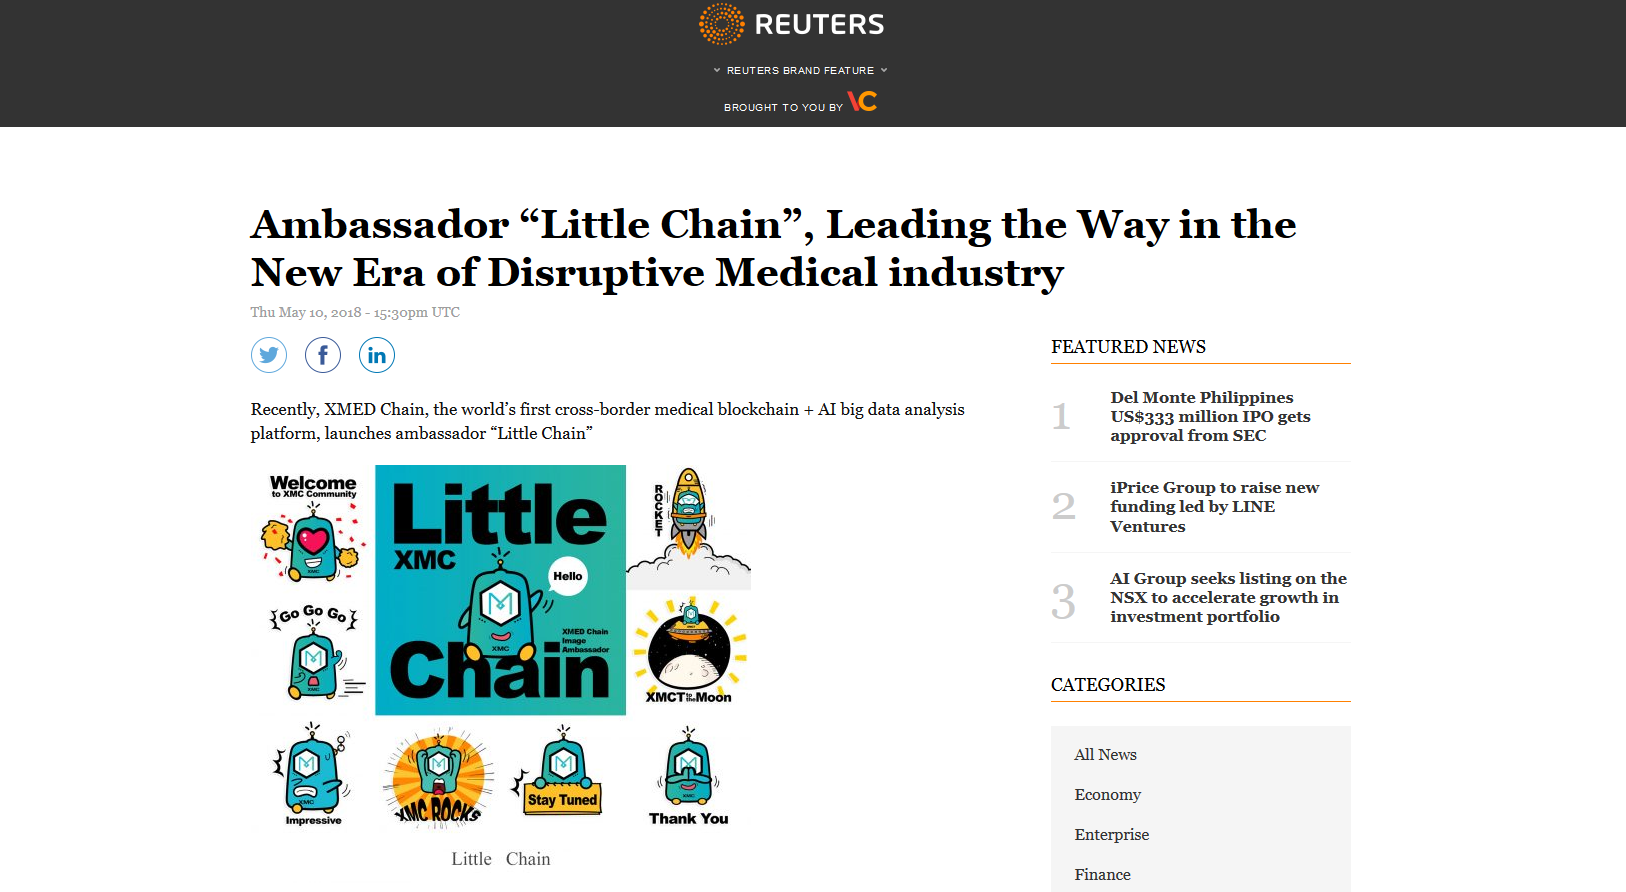 """Screenshot-2018-6-4 Ambassador """"Little Chain"""", Leading the Way in the New Era of Disruptive Medical industry - Reuters.png"""